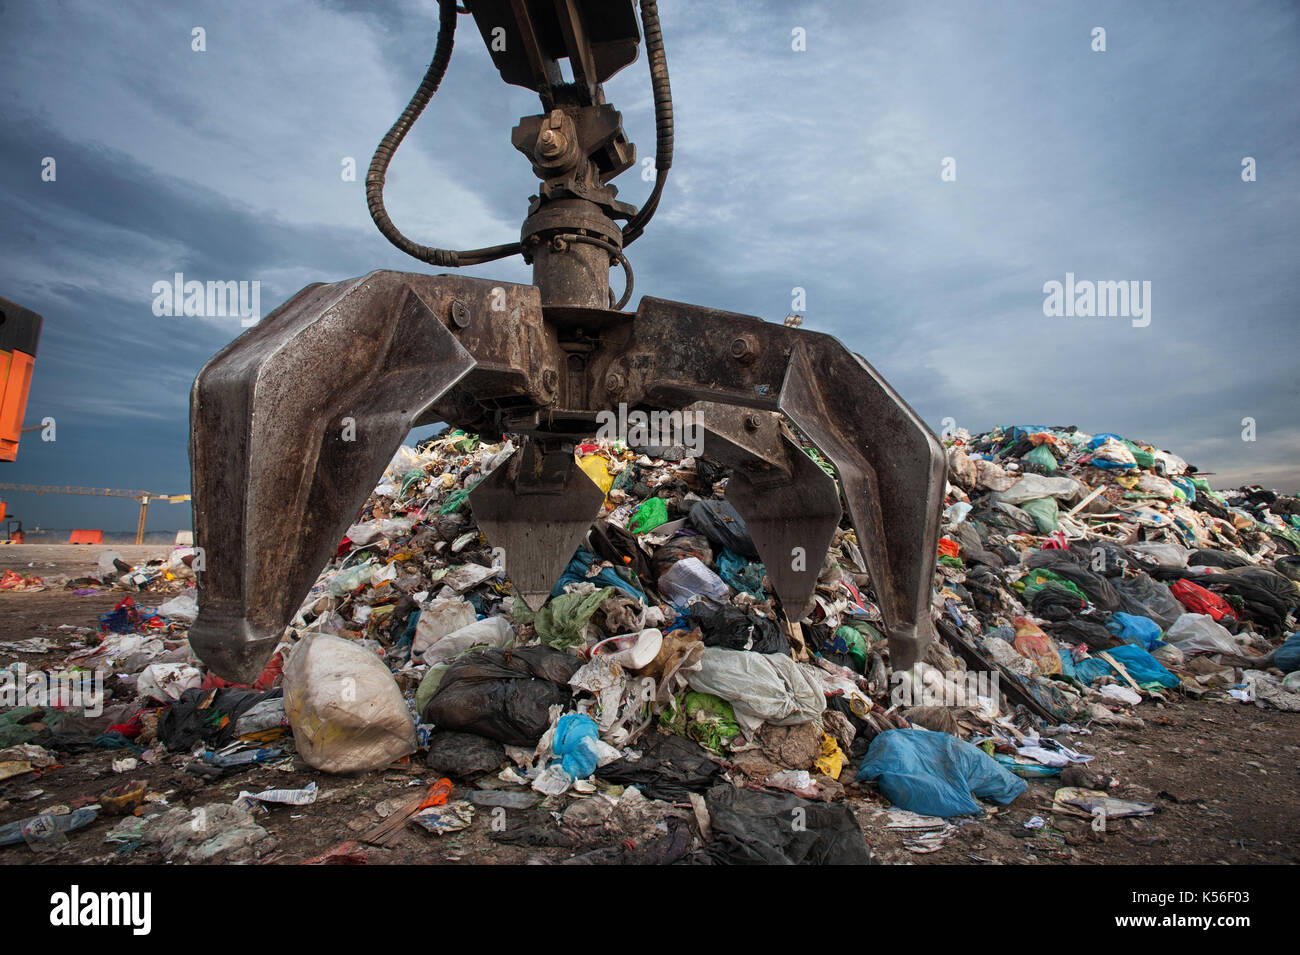 Close up of mechanical arm grabbing waste from a pile at city landfill - Stock Image